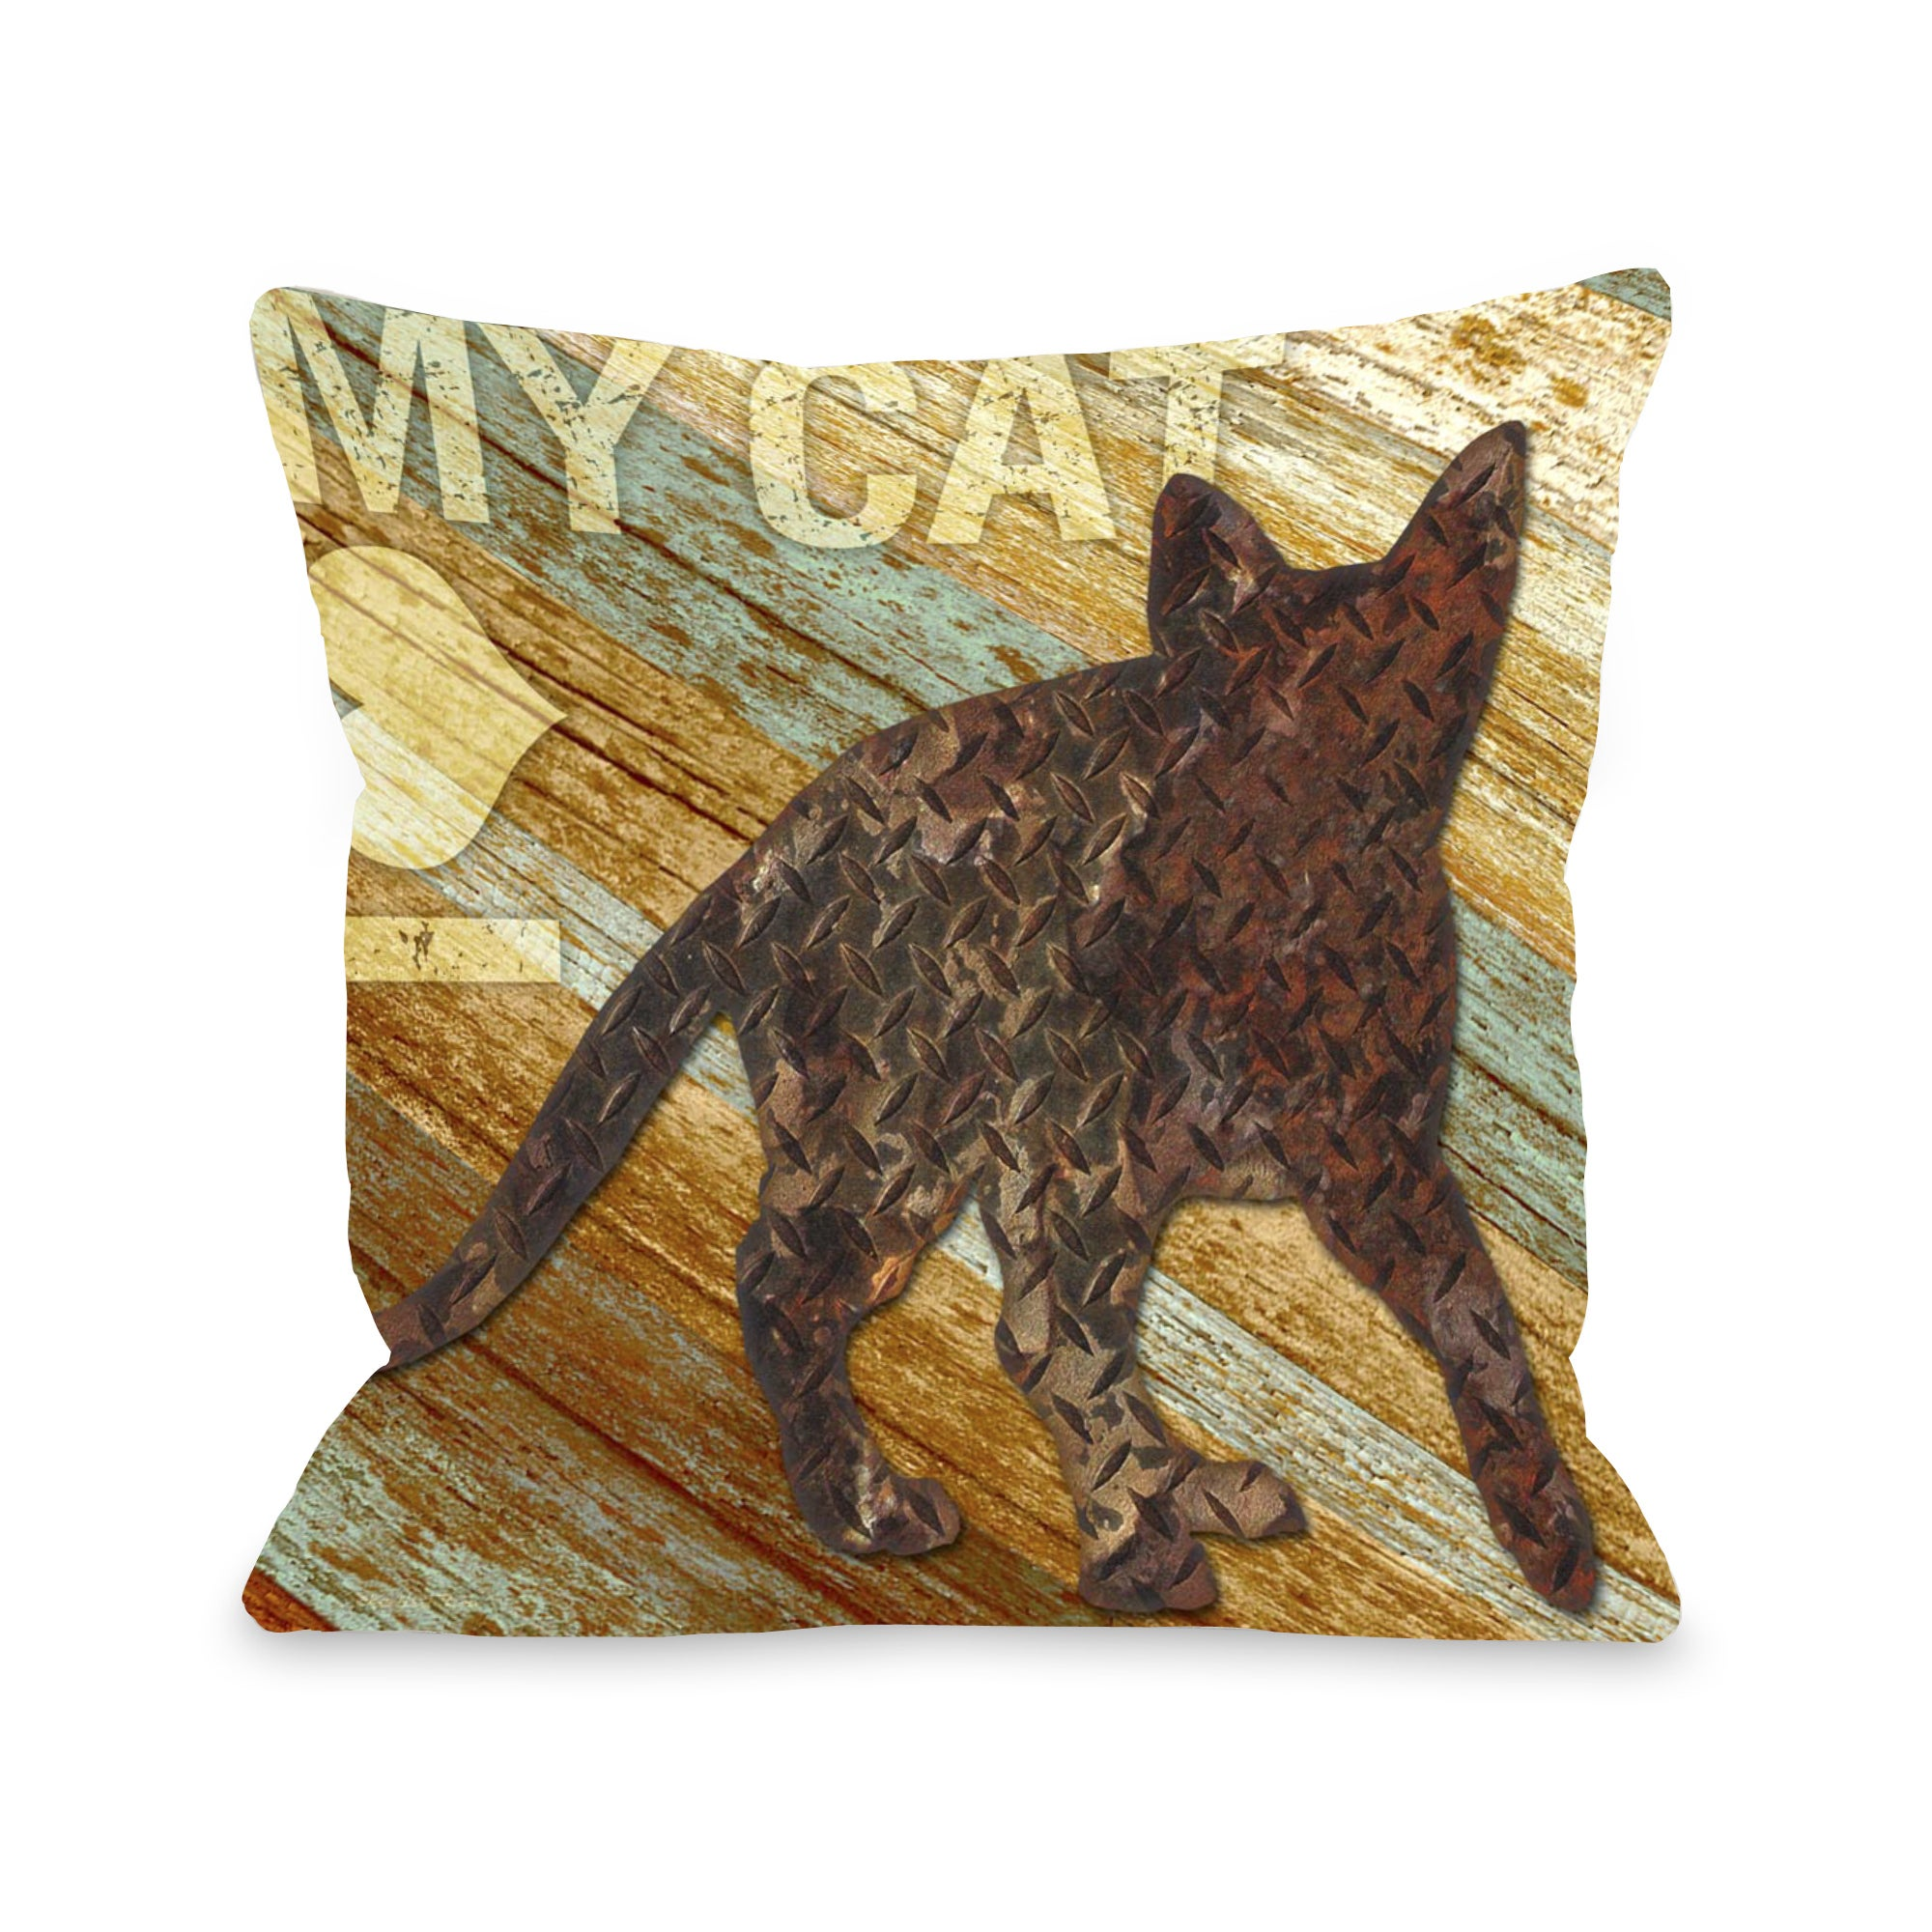 I love my Cat Wood Throw Pillow (Oversized - Specialty)